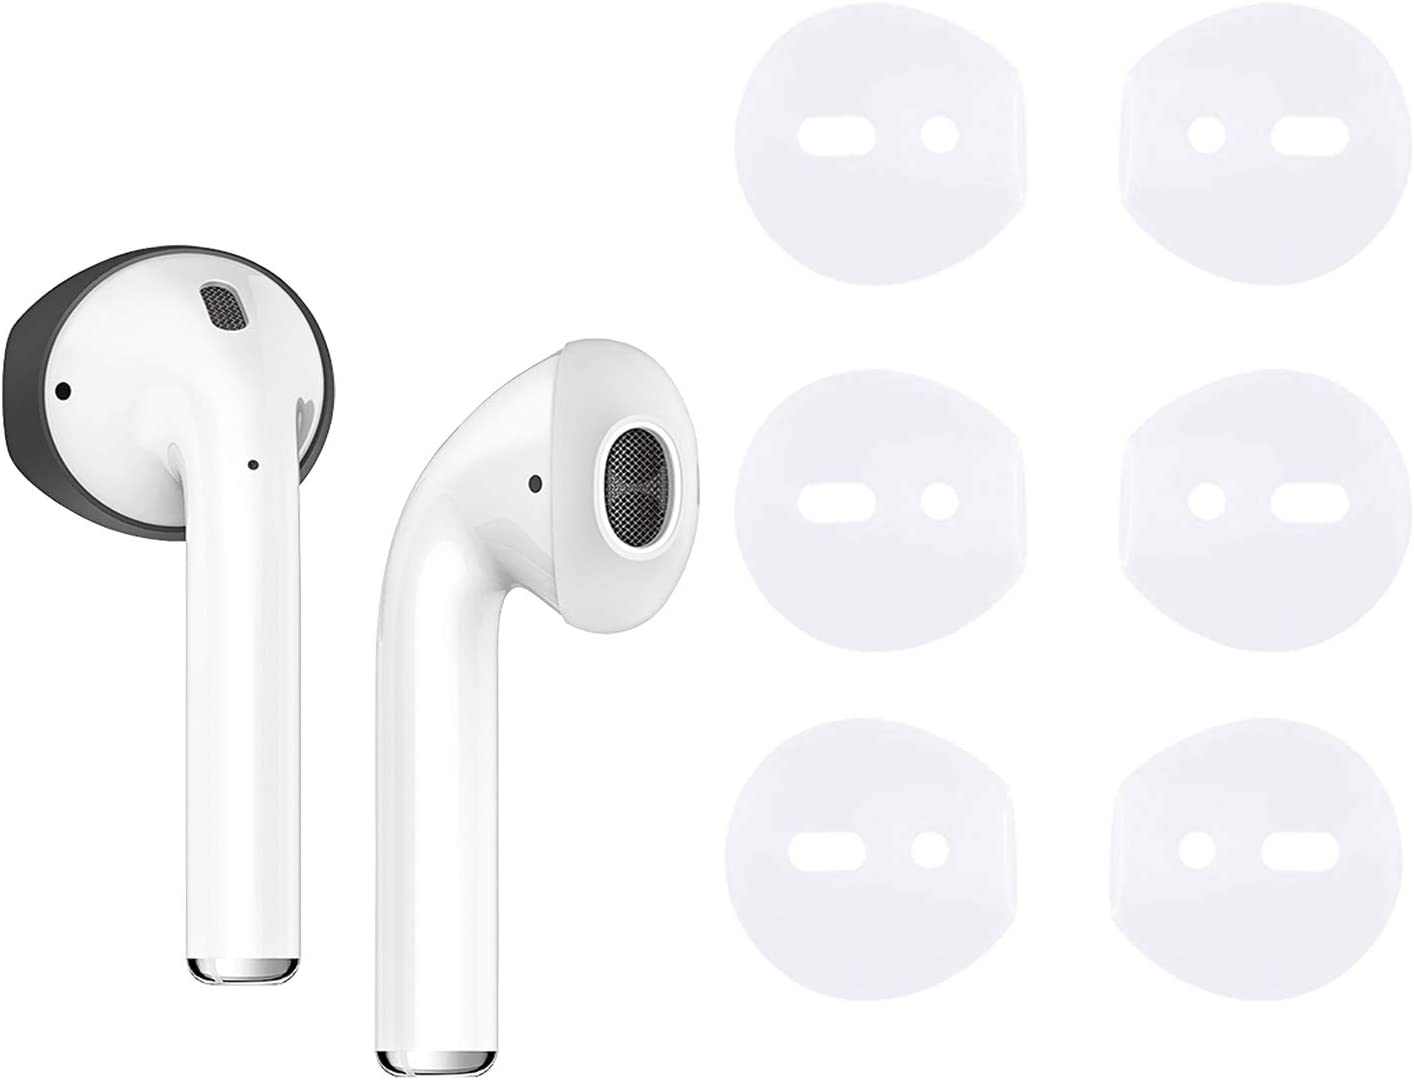 {Fit in Case}Silicone Protecitve Tips Ear Skins and Covers Replacement Anti Slip Soft eartips Compatible with Apple AirPods 1 & 2 or EarPods Headphones/Earphones/Earbuds (3 Pairs Clear)